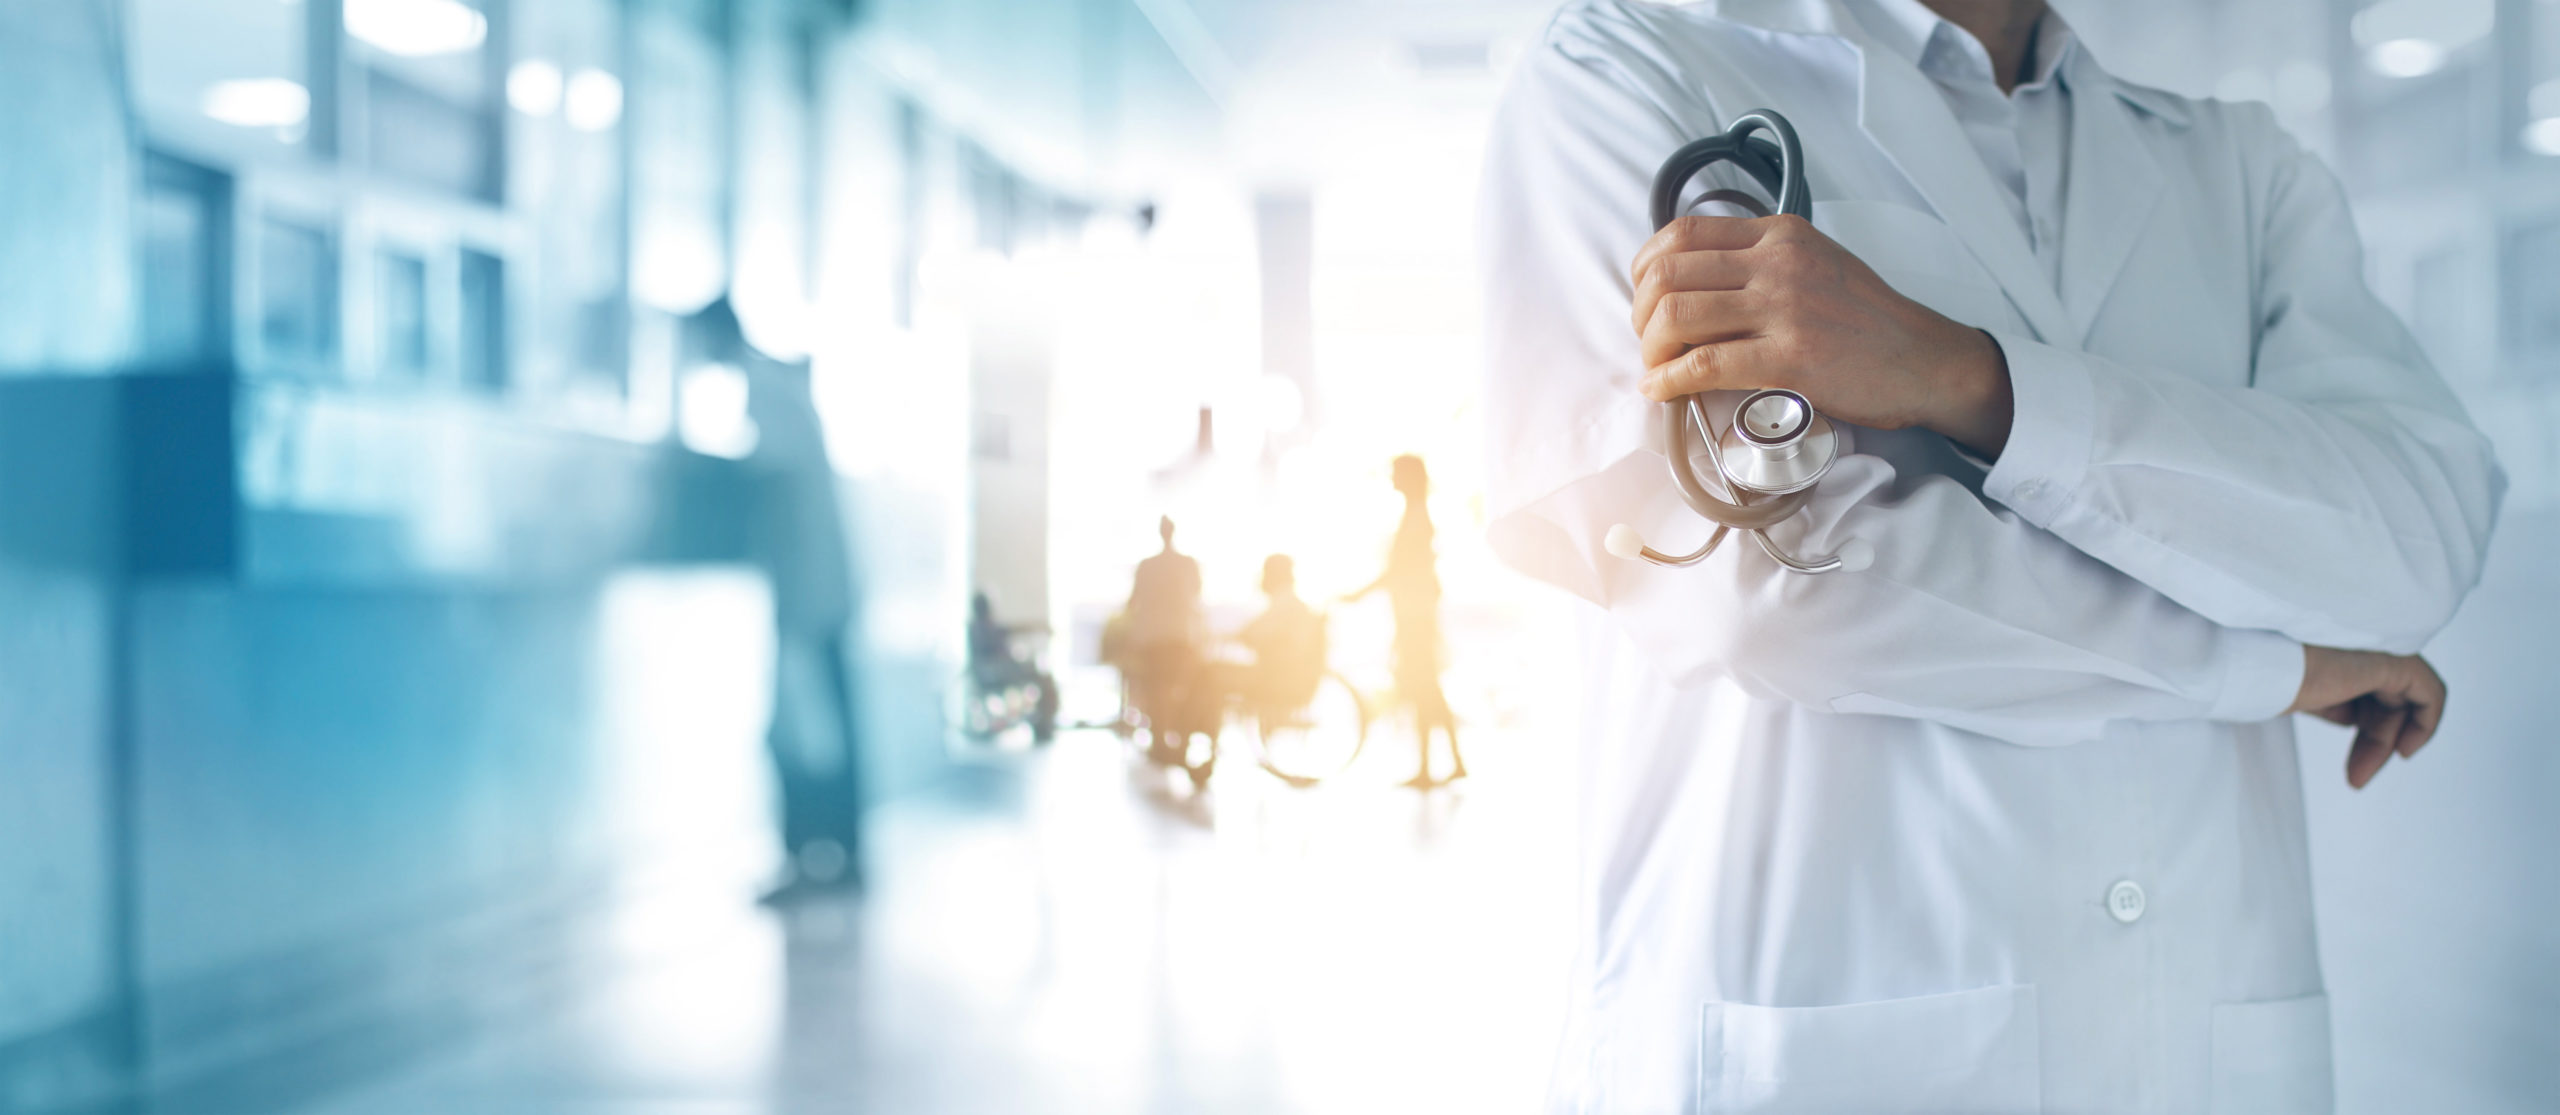 Neck-down photo of a doctor wearing a white coat, crossing his arms and holding a stethoscope in his left hand, symbolizing medical malpractice attributed to Covid-19. There are patients and staff blurred in the background.